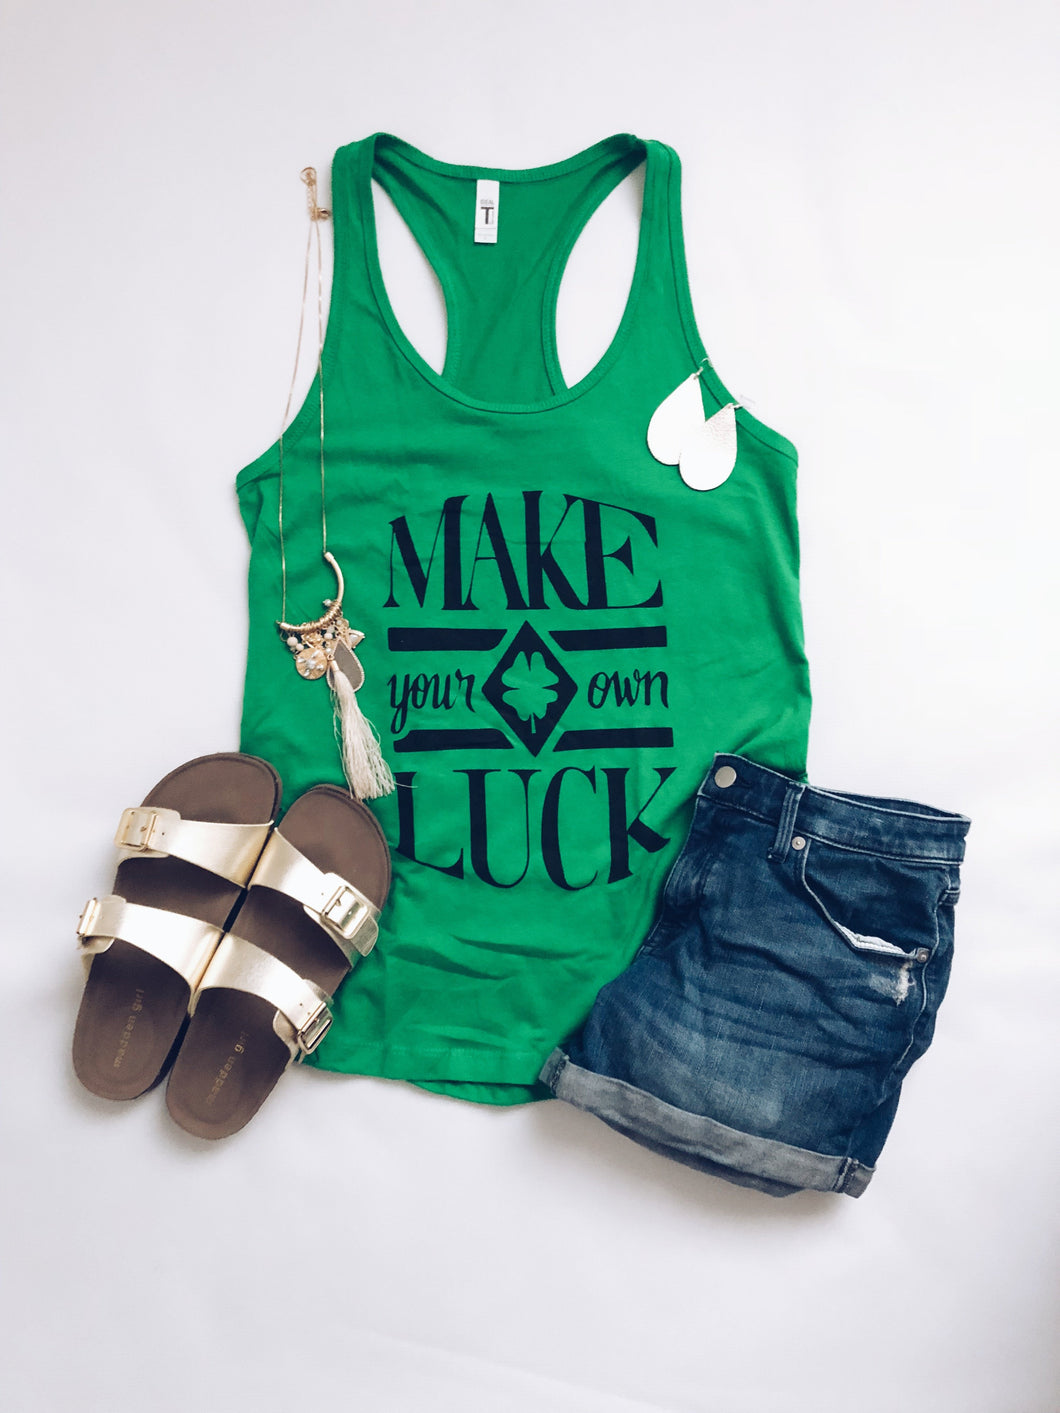 Make your own luck tank St pattys day tank Ideal fit tank Kelly green